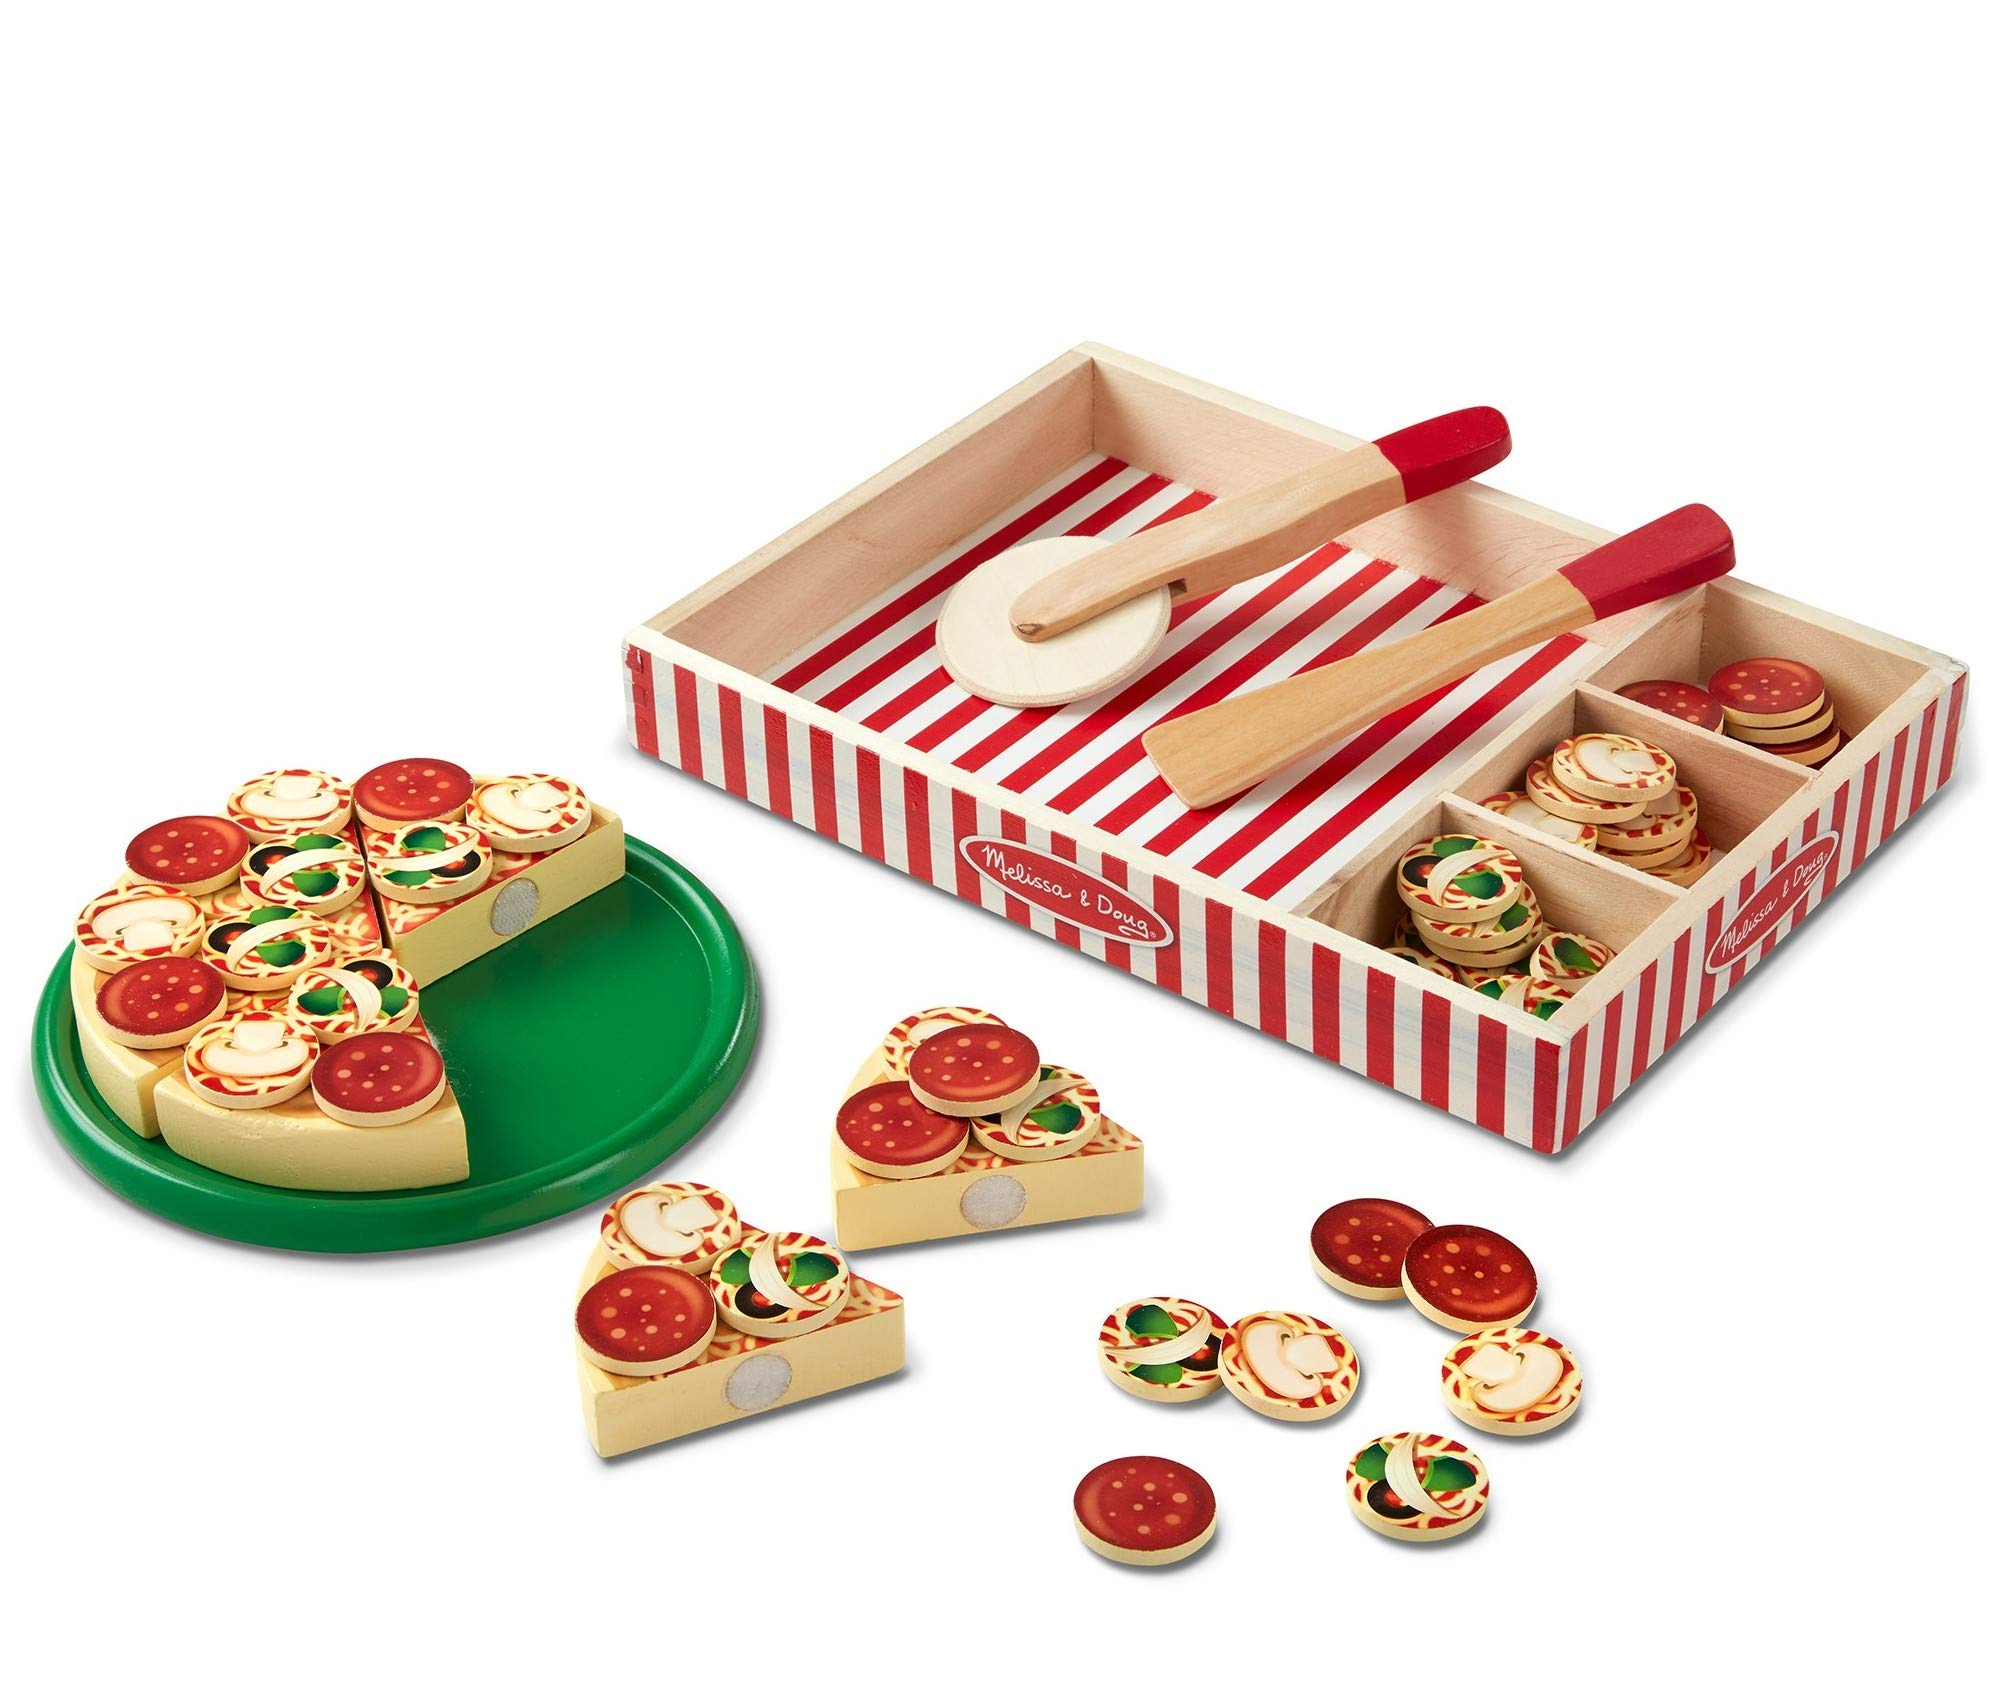 Melissa & Doug Pizza Party Play set - 63 Pieces, H: 13.5 x W: 10.5 x D: 1.6